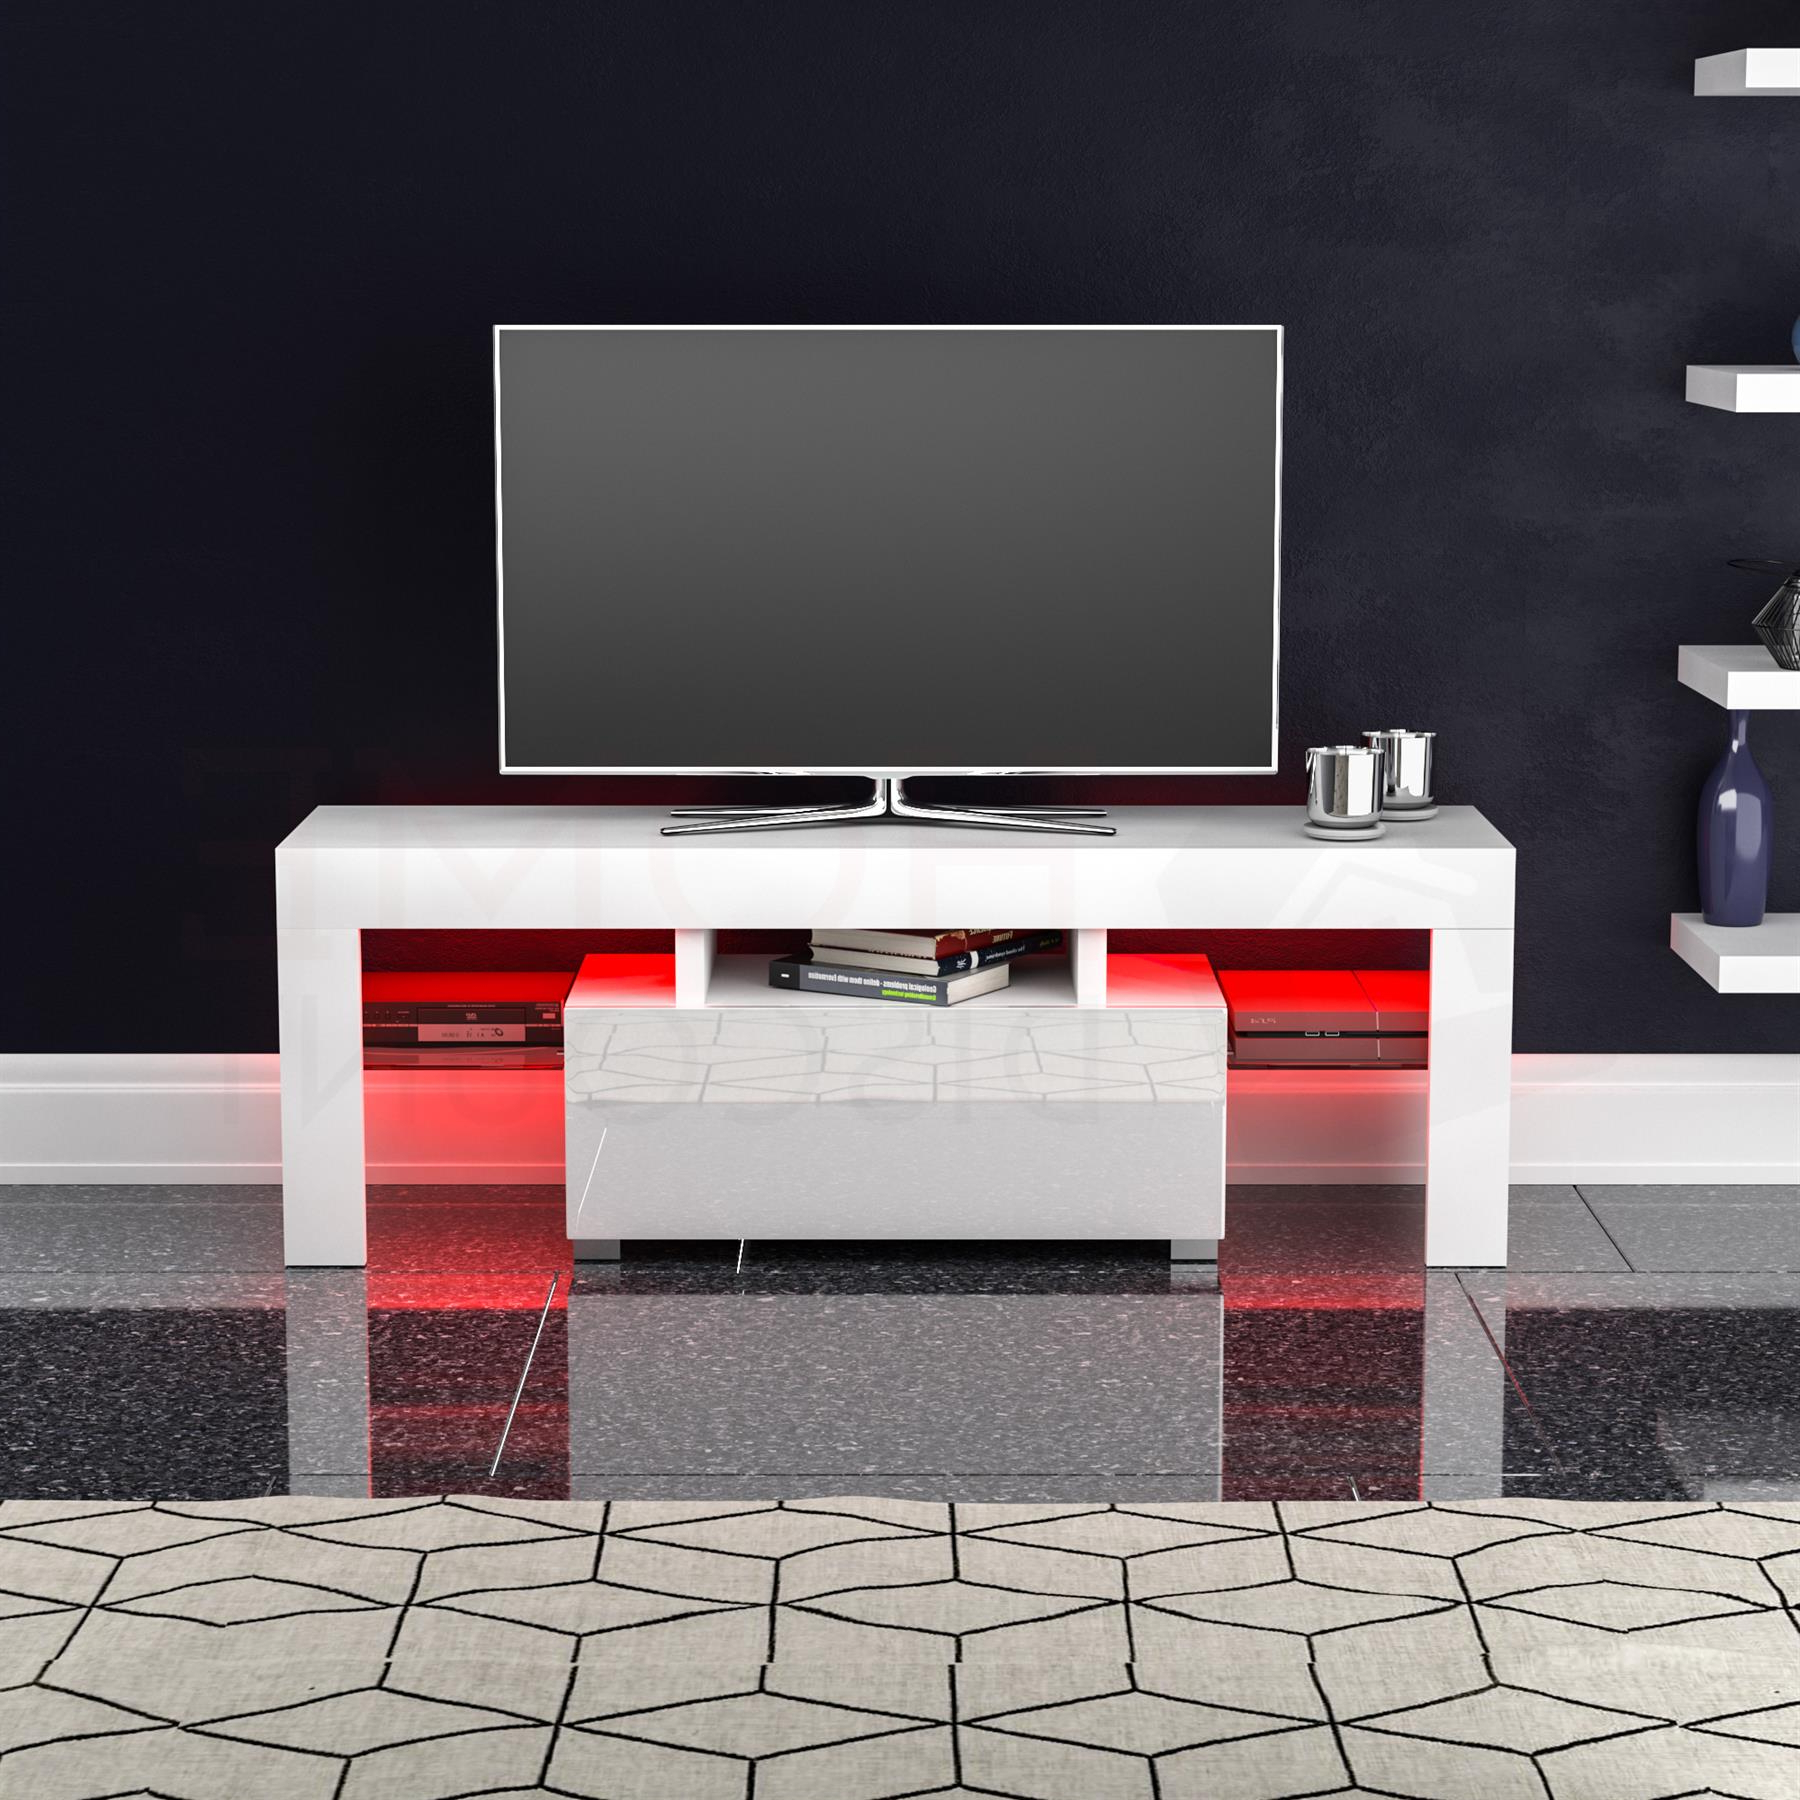 Most Popular Zimtown Modern Tv Stands High Gloss Media Console Cabinet With Led Shelf And Drawers With Luna Led Tv Stand Cabinet Unit 1 Drawer Modern (View 10 of 10)